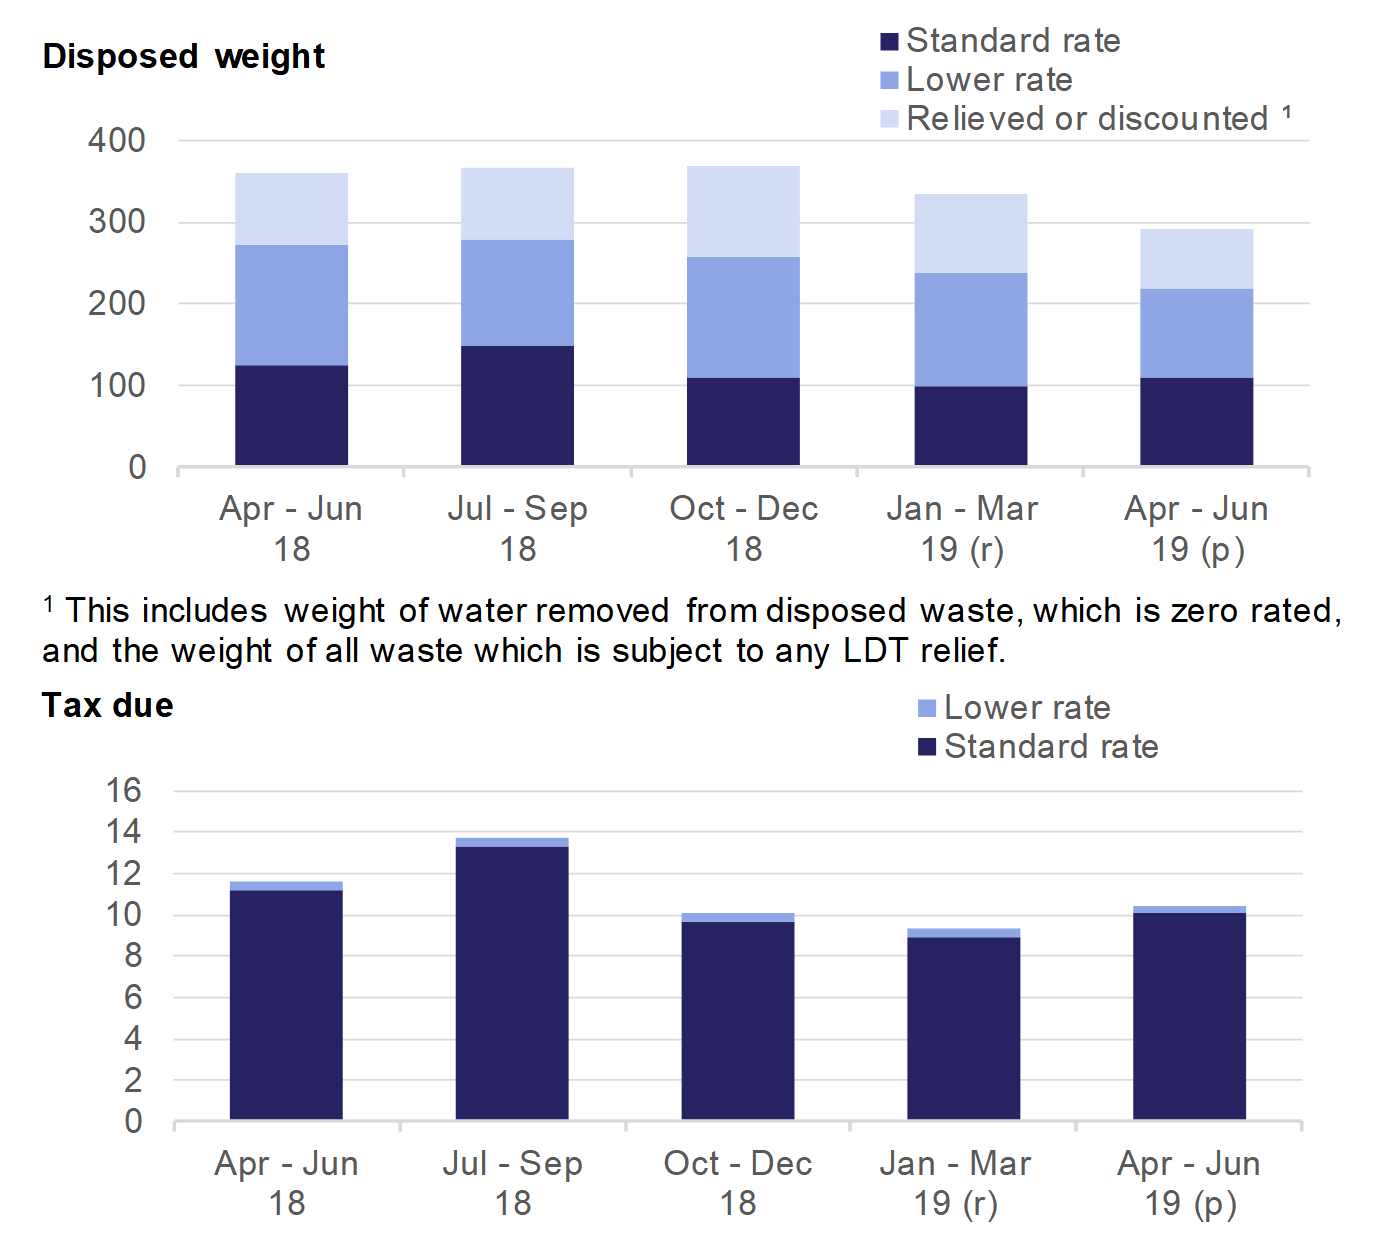 Chart 1 shows the weight of and tax due on waste disposed to landfill, by quarter.